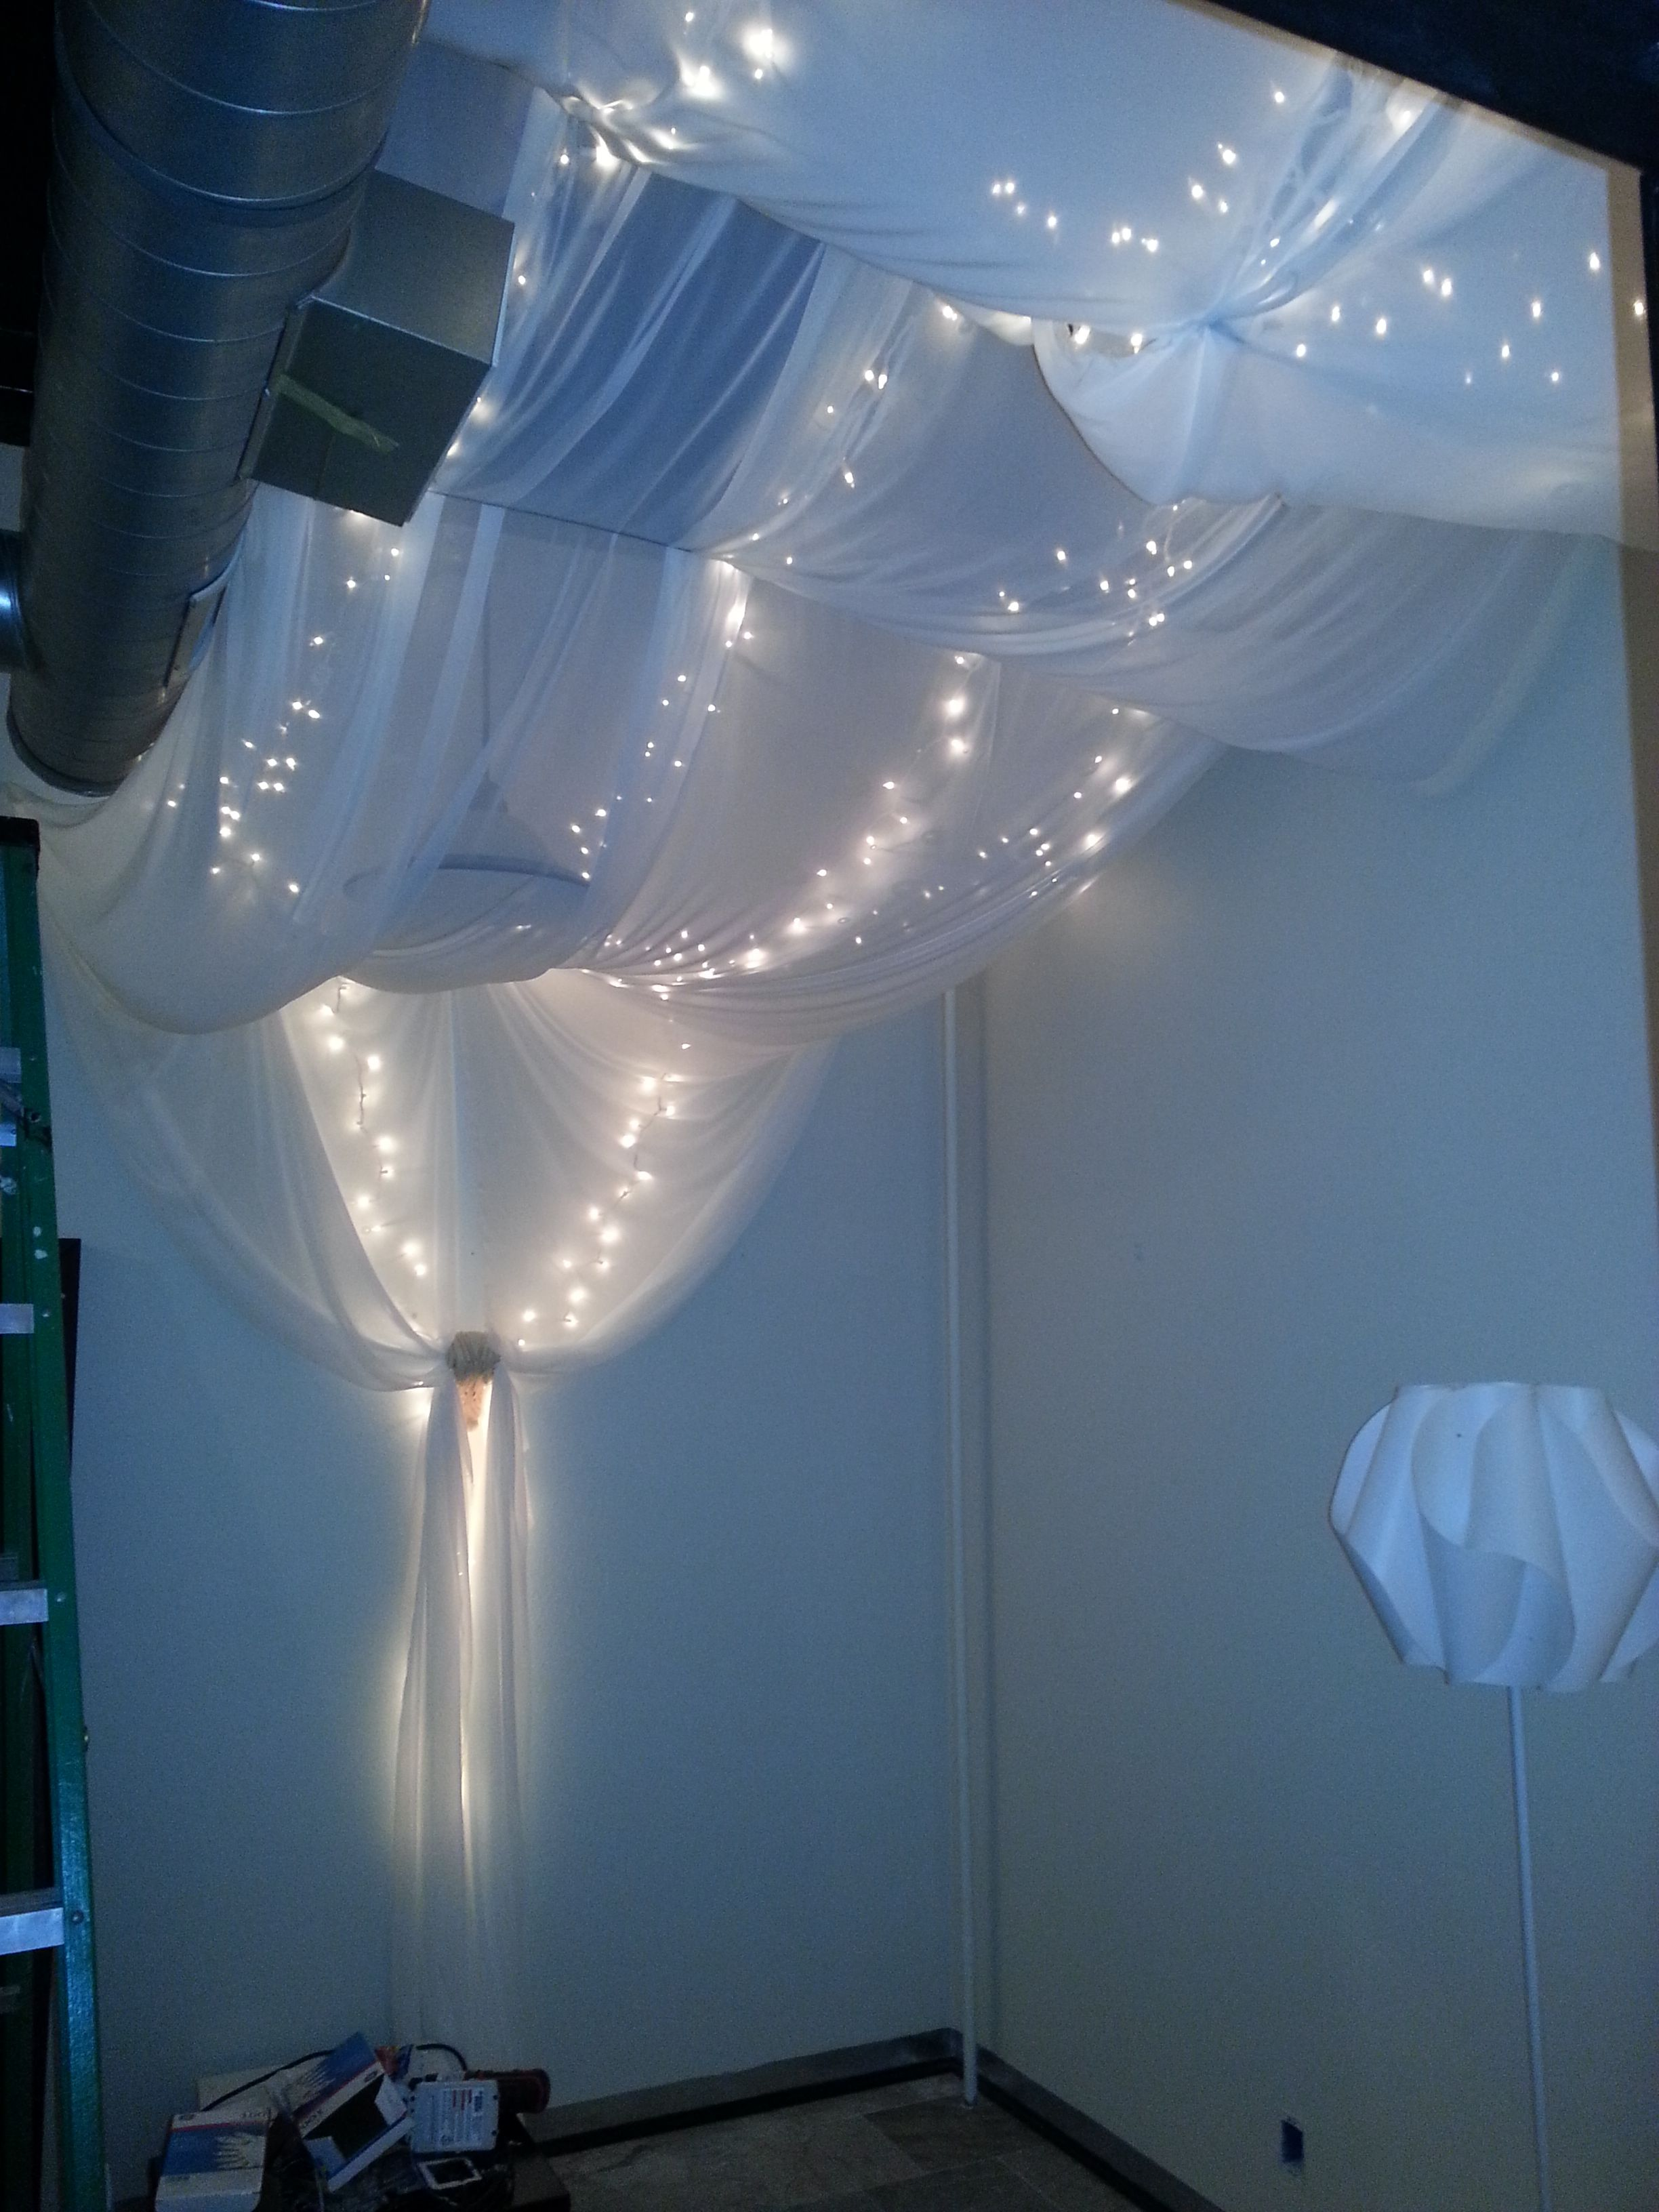 Massage Therapy Room Design Ideas: Fun Doing Draperies & Lights & Beauty! This Is The Facial